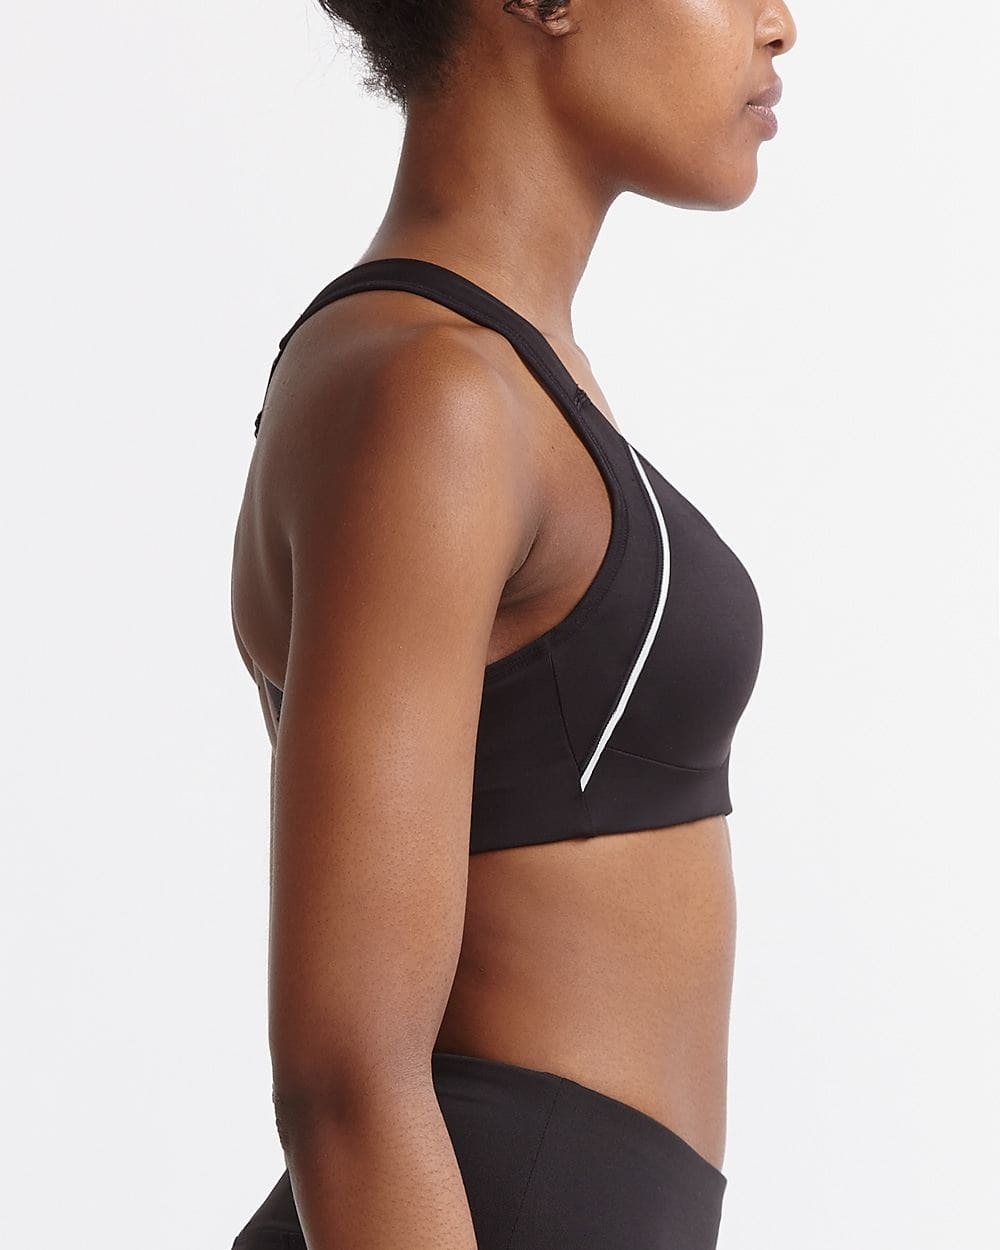 Hyba Reflective High-Support Sports Bra